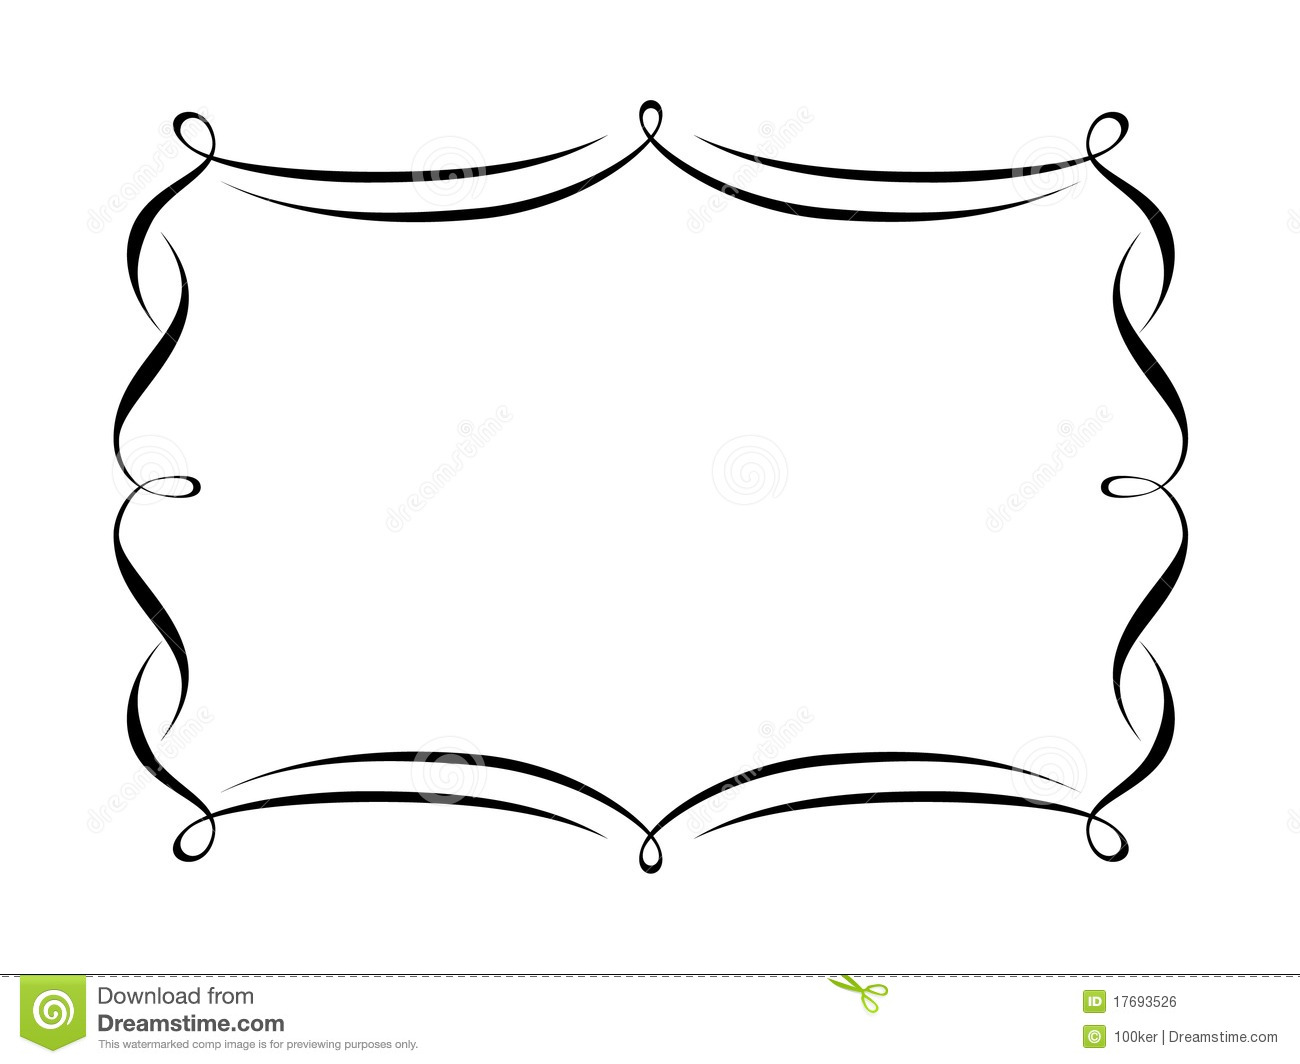 Shapes clipart frame #15